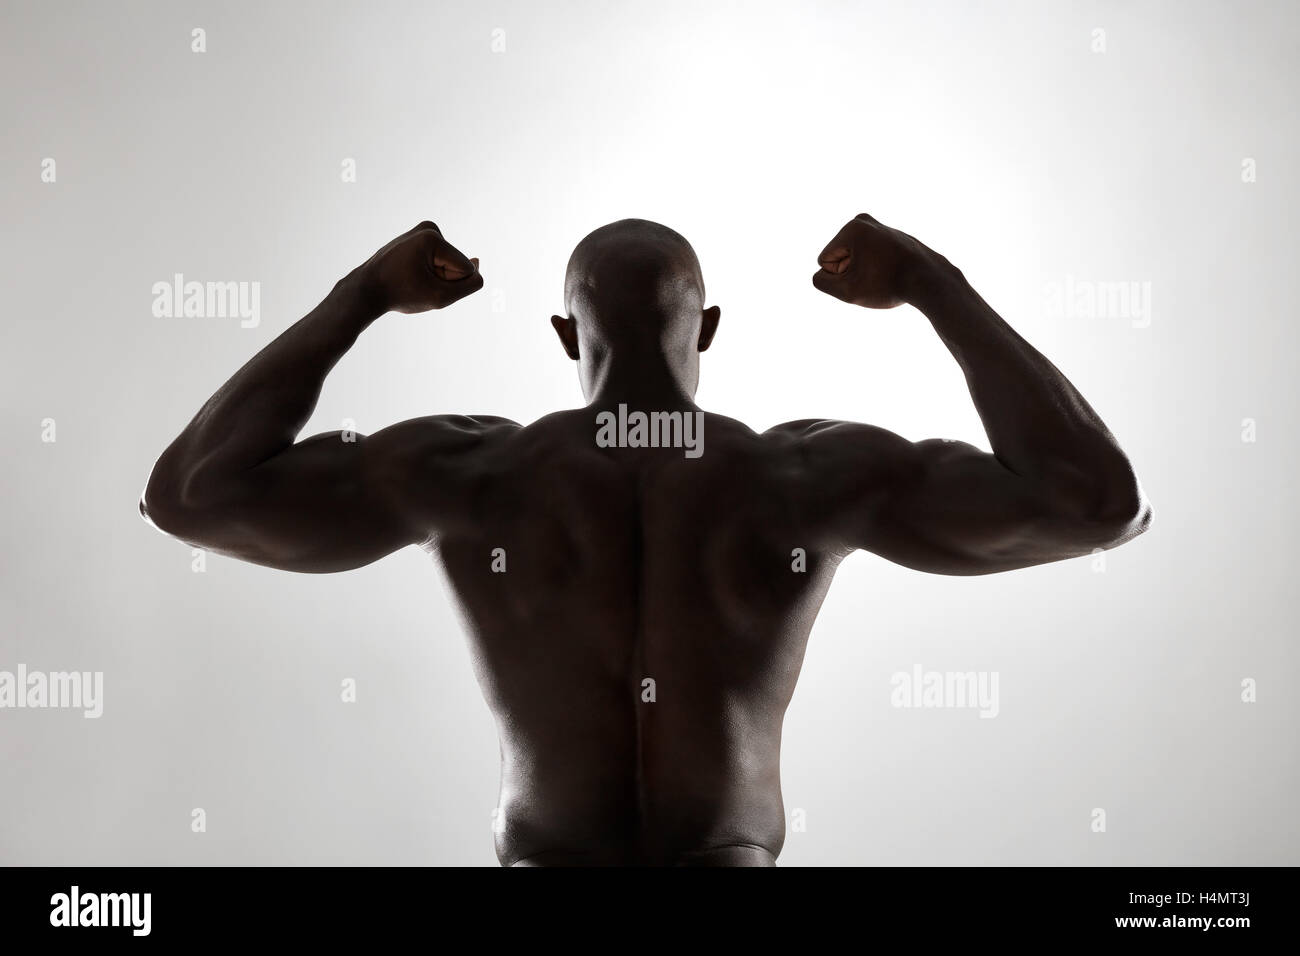 Strong back of a black muscular man flexing his arms against grey background. Rear view of african fitness model - Stock Image